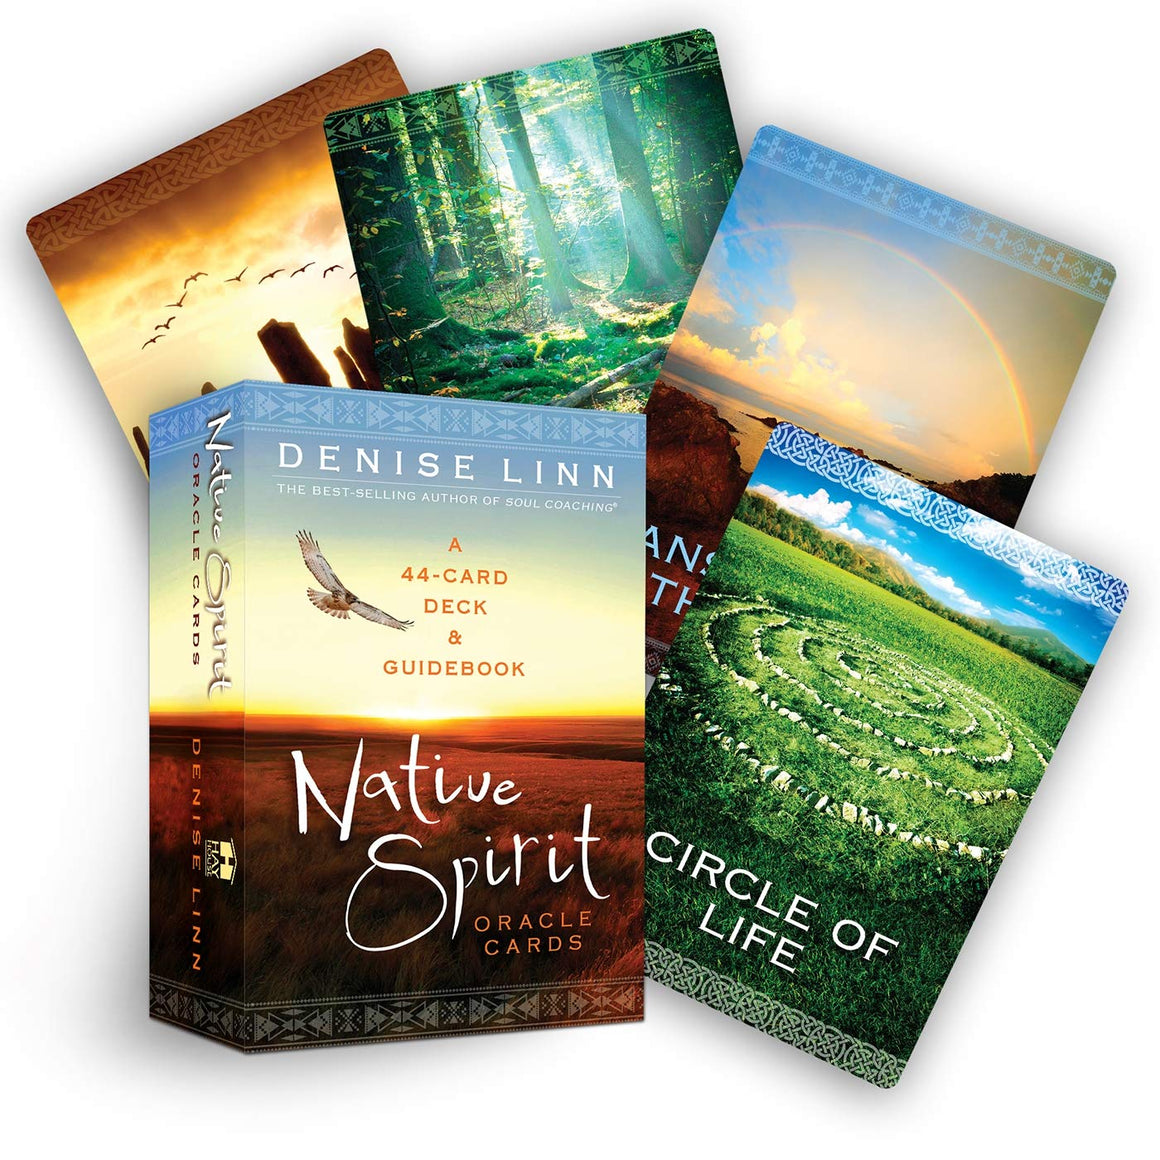 Native Spirit Oracle Cards by Denise Linn